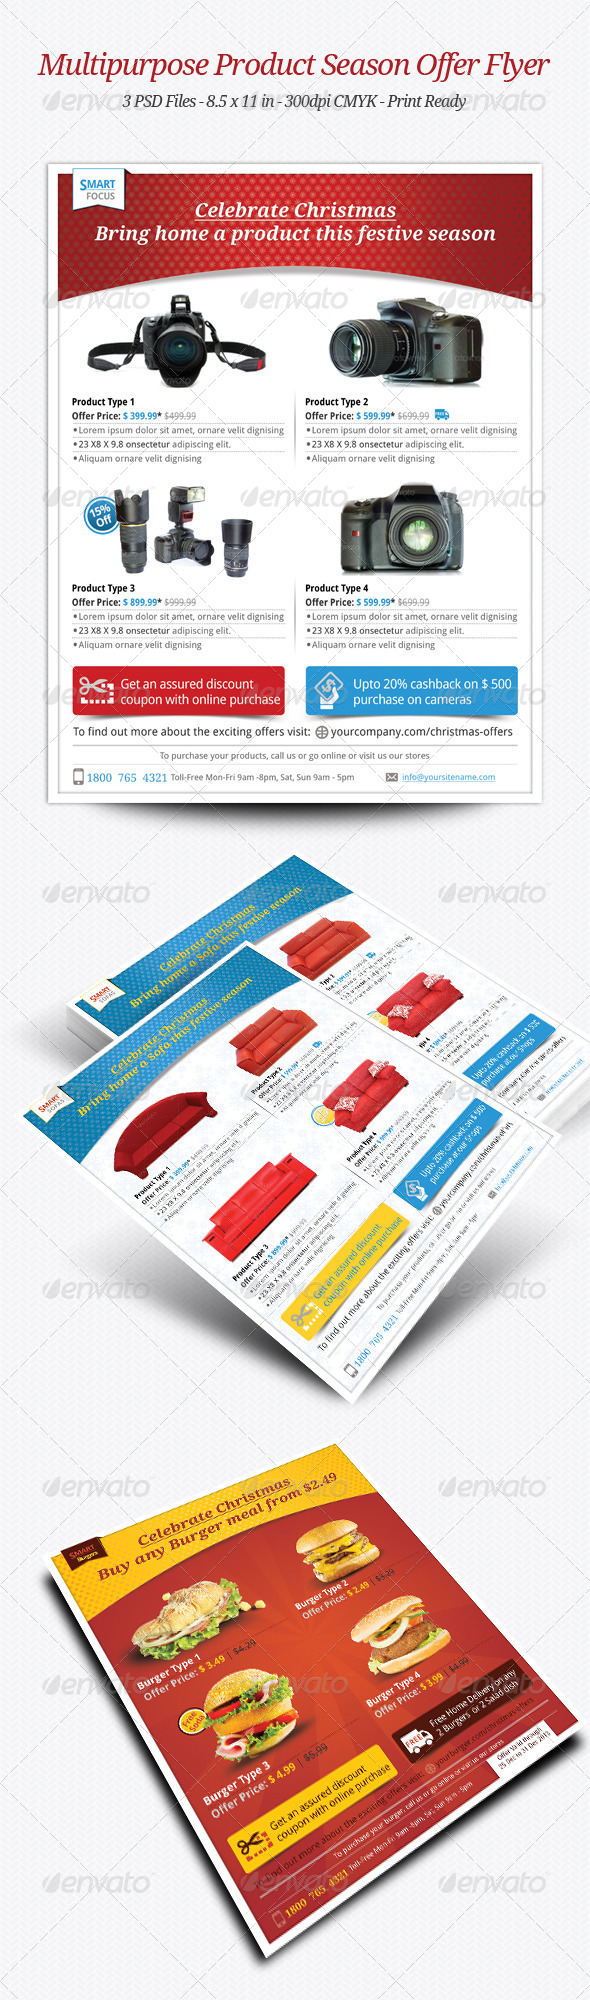 GraphicRiver Multipurpose Product Season Offer Flyer 6053790